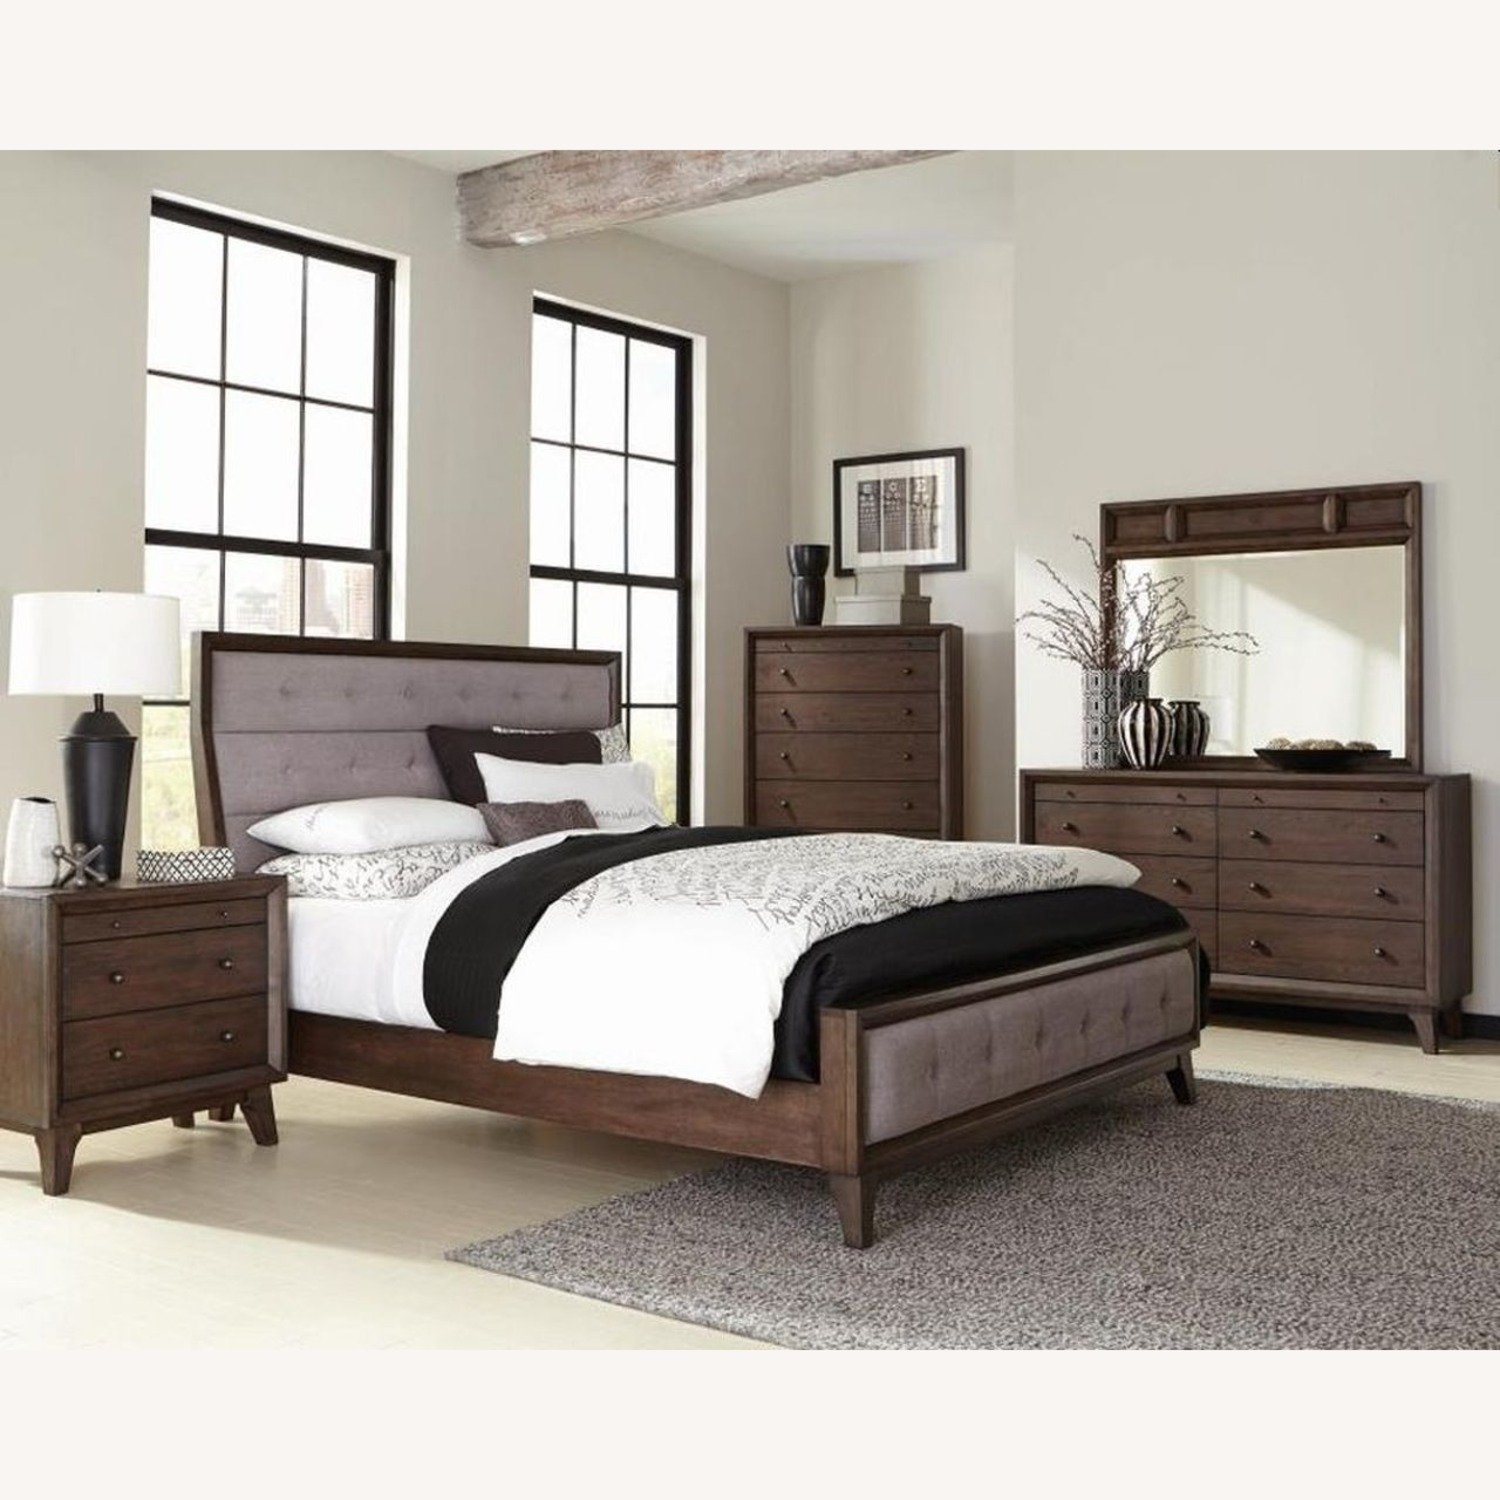 Retro Queen Bed In A Neutral Grey Fabric - image-2